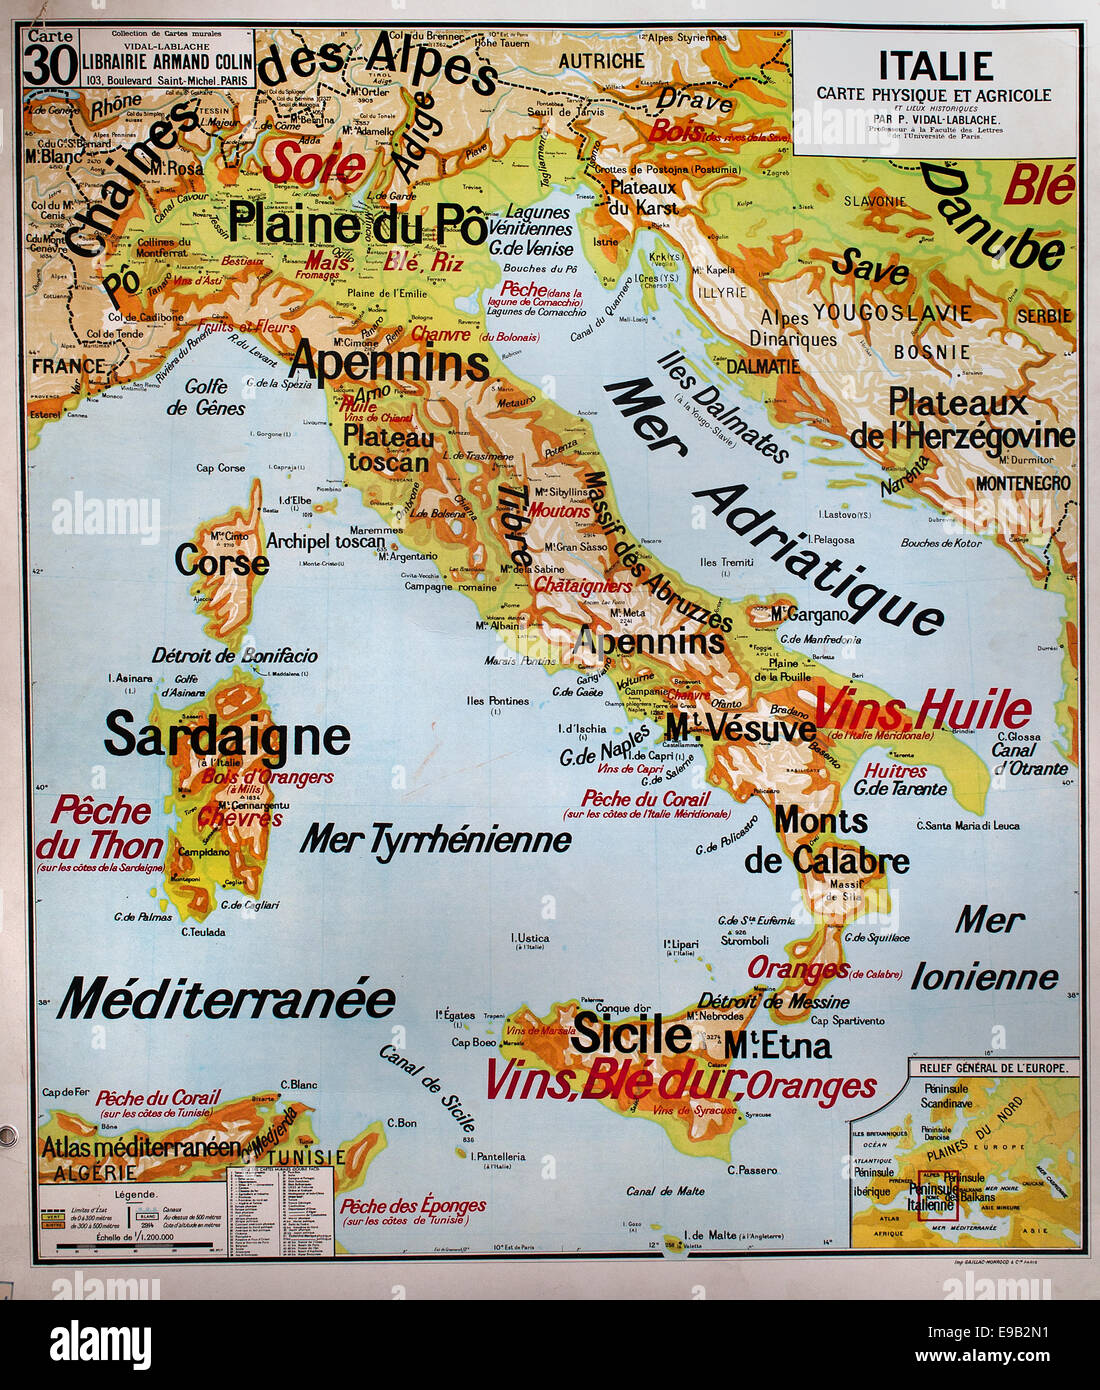 Map mediterranean sea italy france stock photos map mediterranean old school world wall map italy mediterranean french cartography stock image gumiabroncs